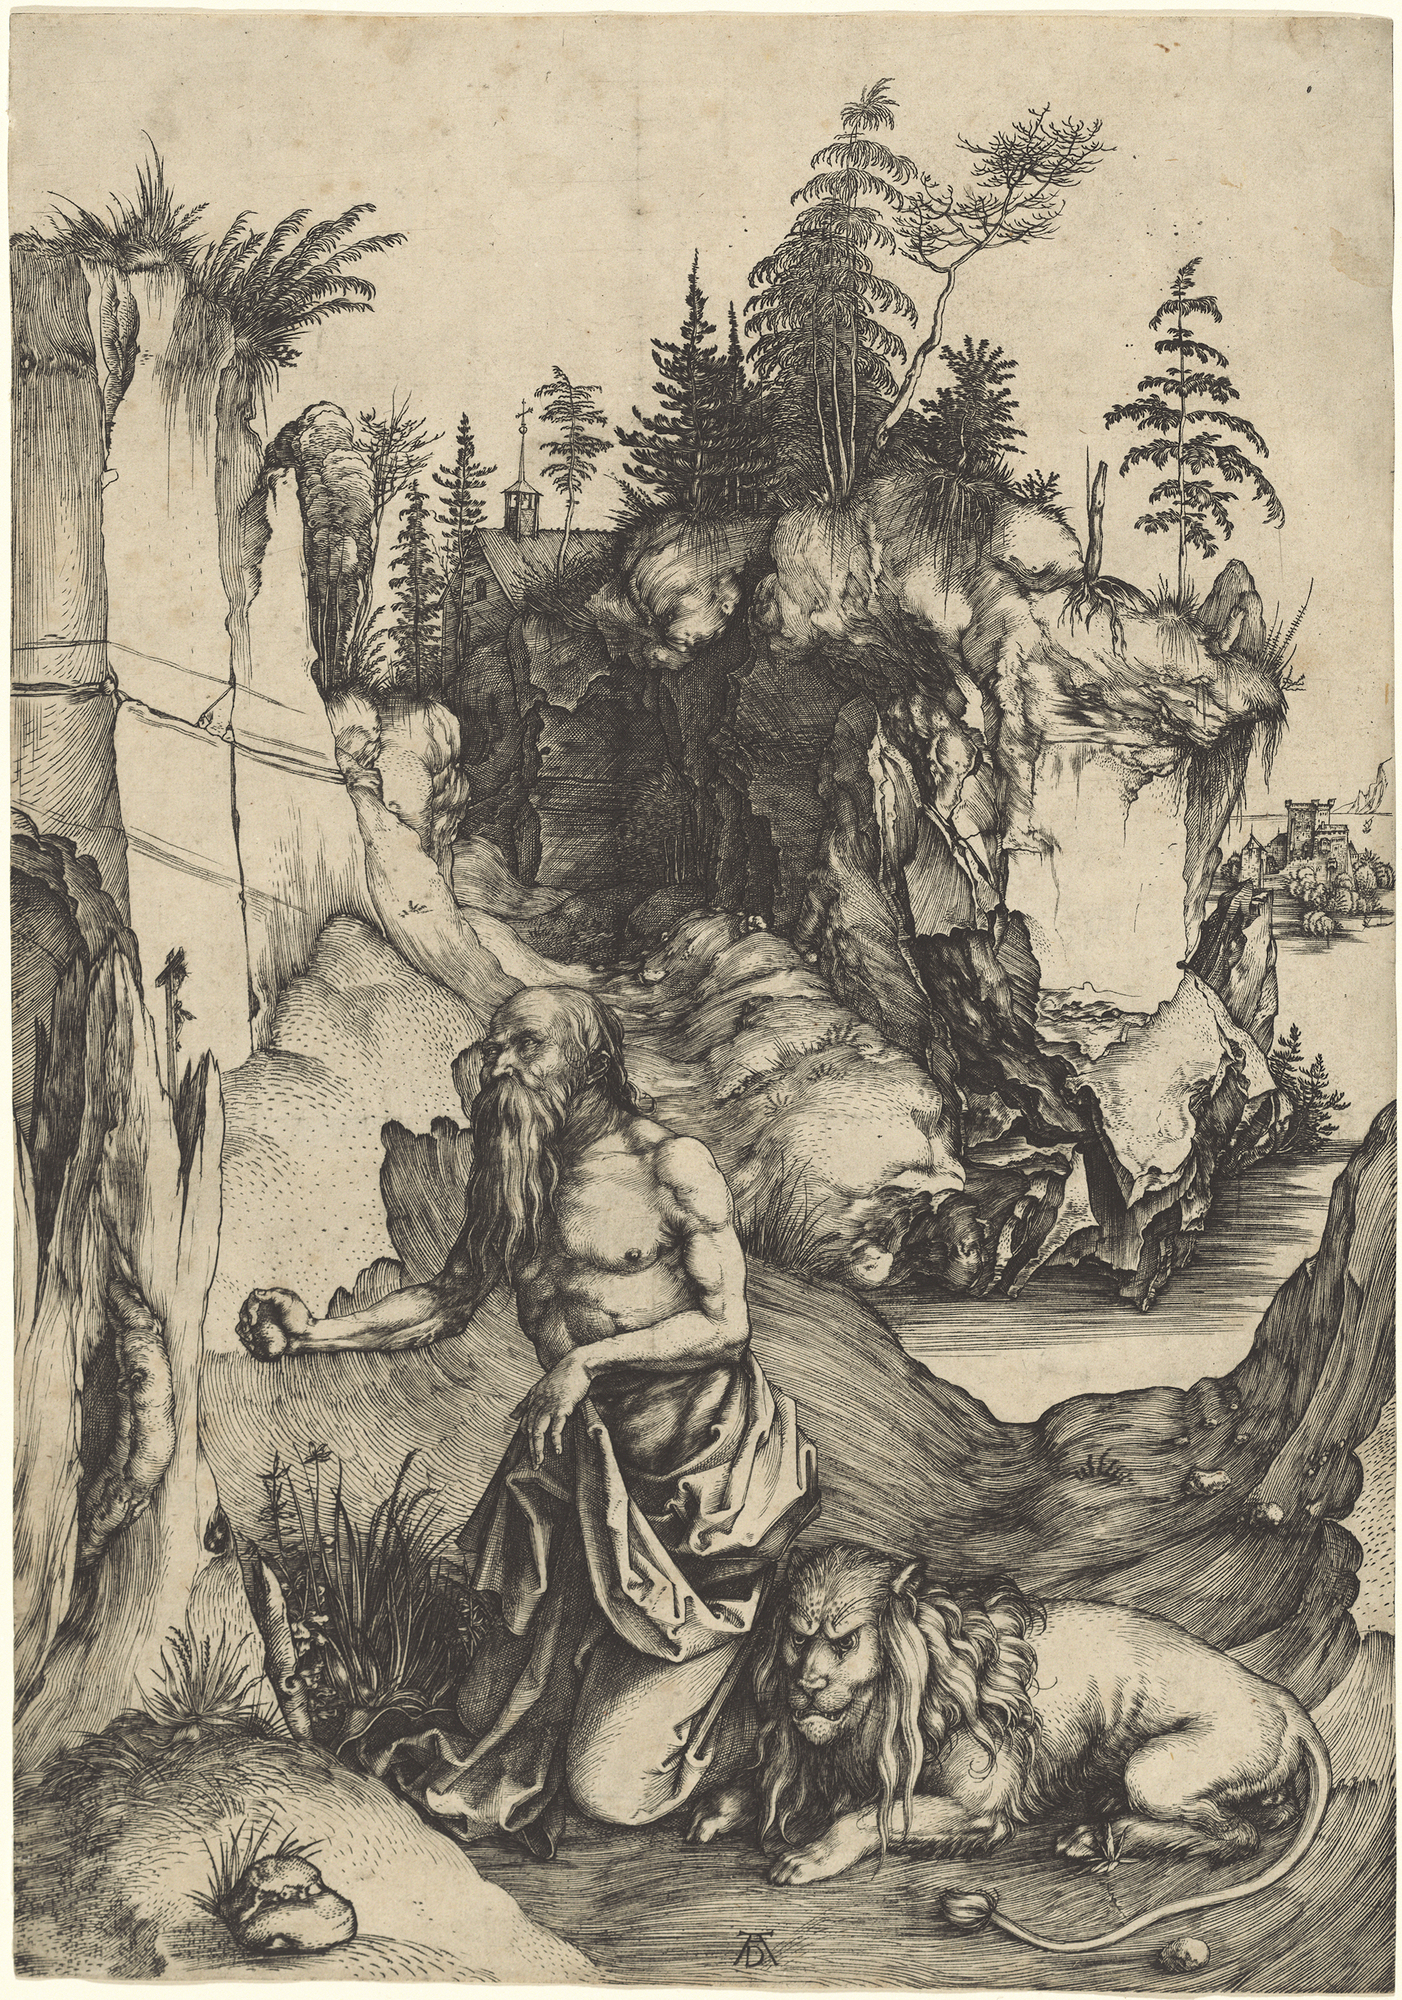 Saint Jerome Penitent in the Wilderness, 1496 — Albrecht Dürer